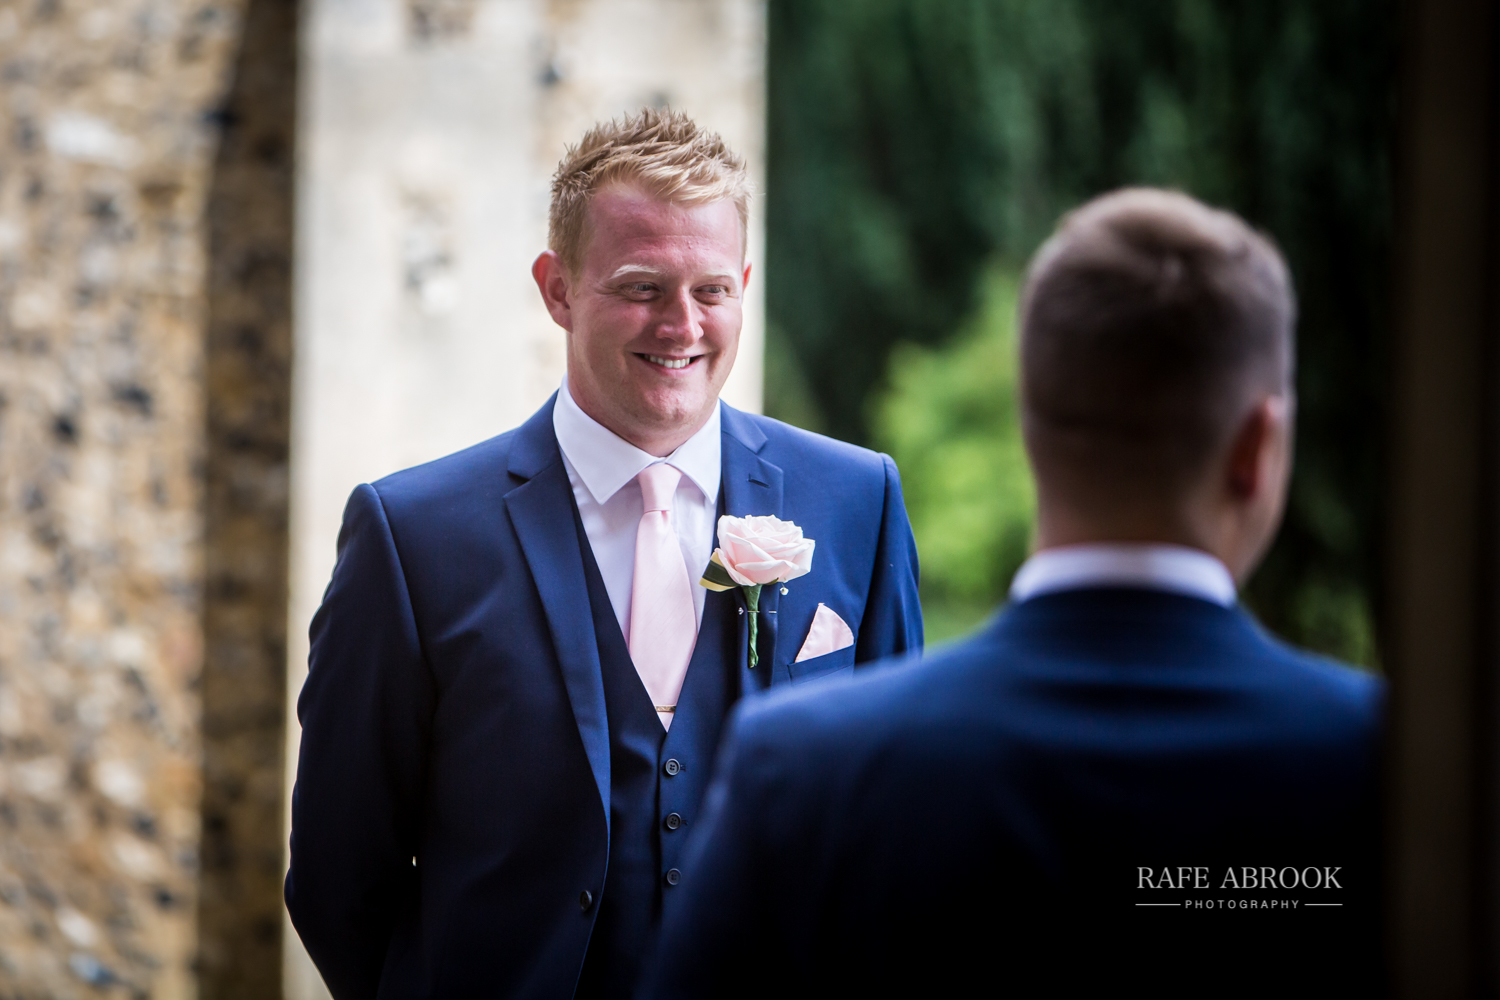 lilley village hall wedding hitchin hertfordshire photographer-1039.jpg